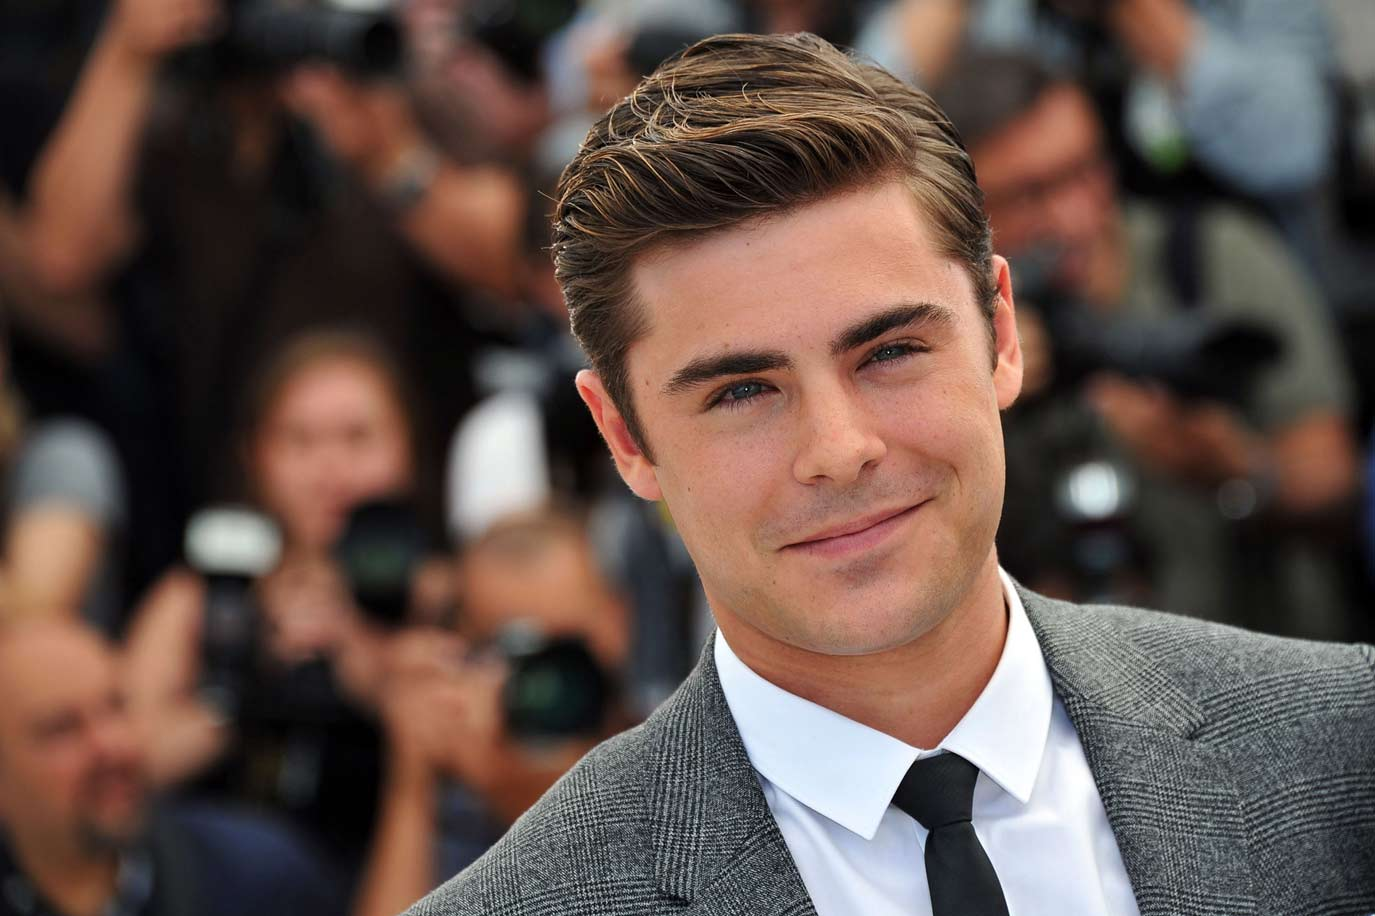 zac-efron-sexy-suit-hollywood-hot-sexiest-actor-men-movie-star-recent